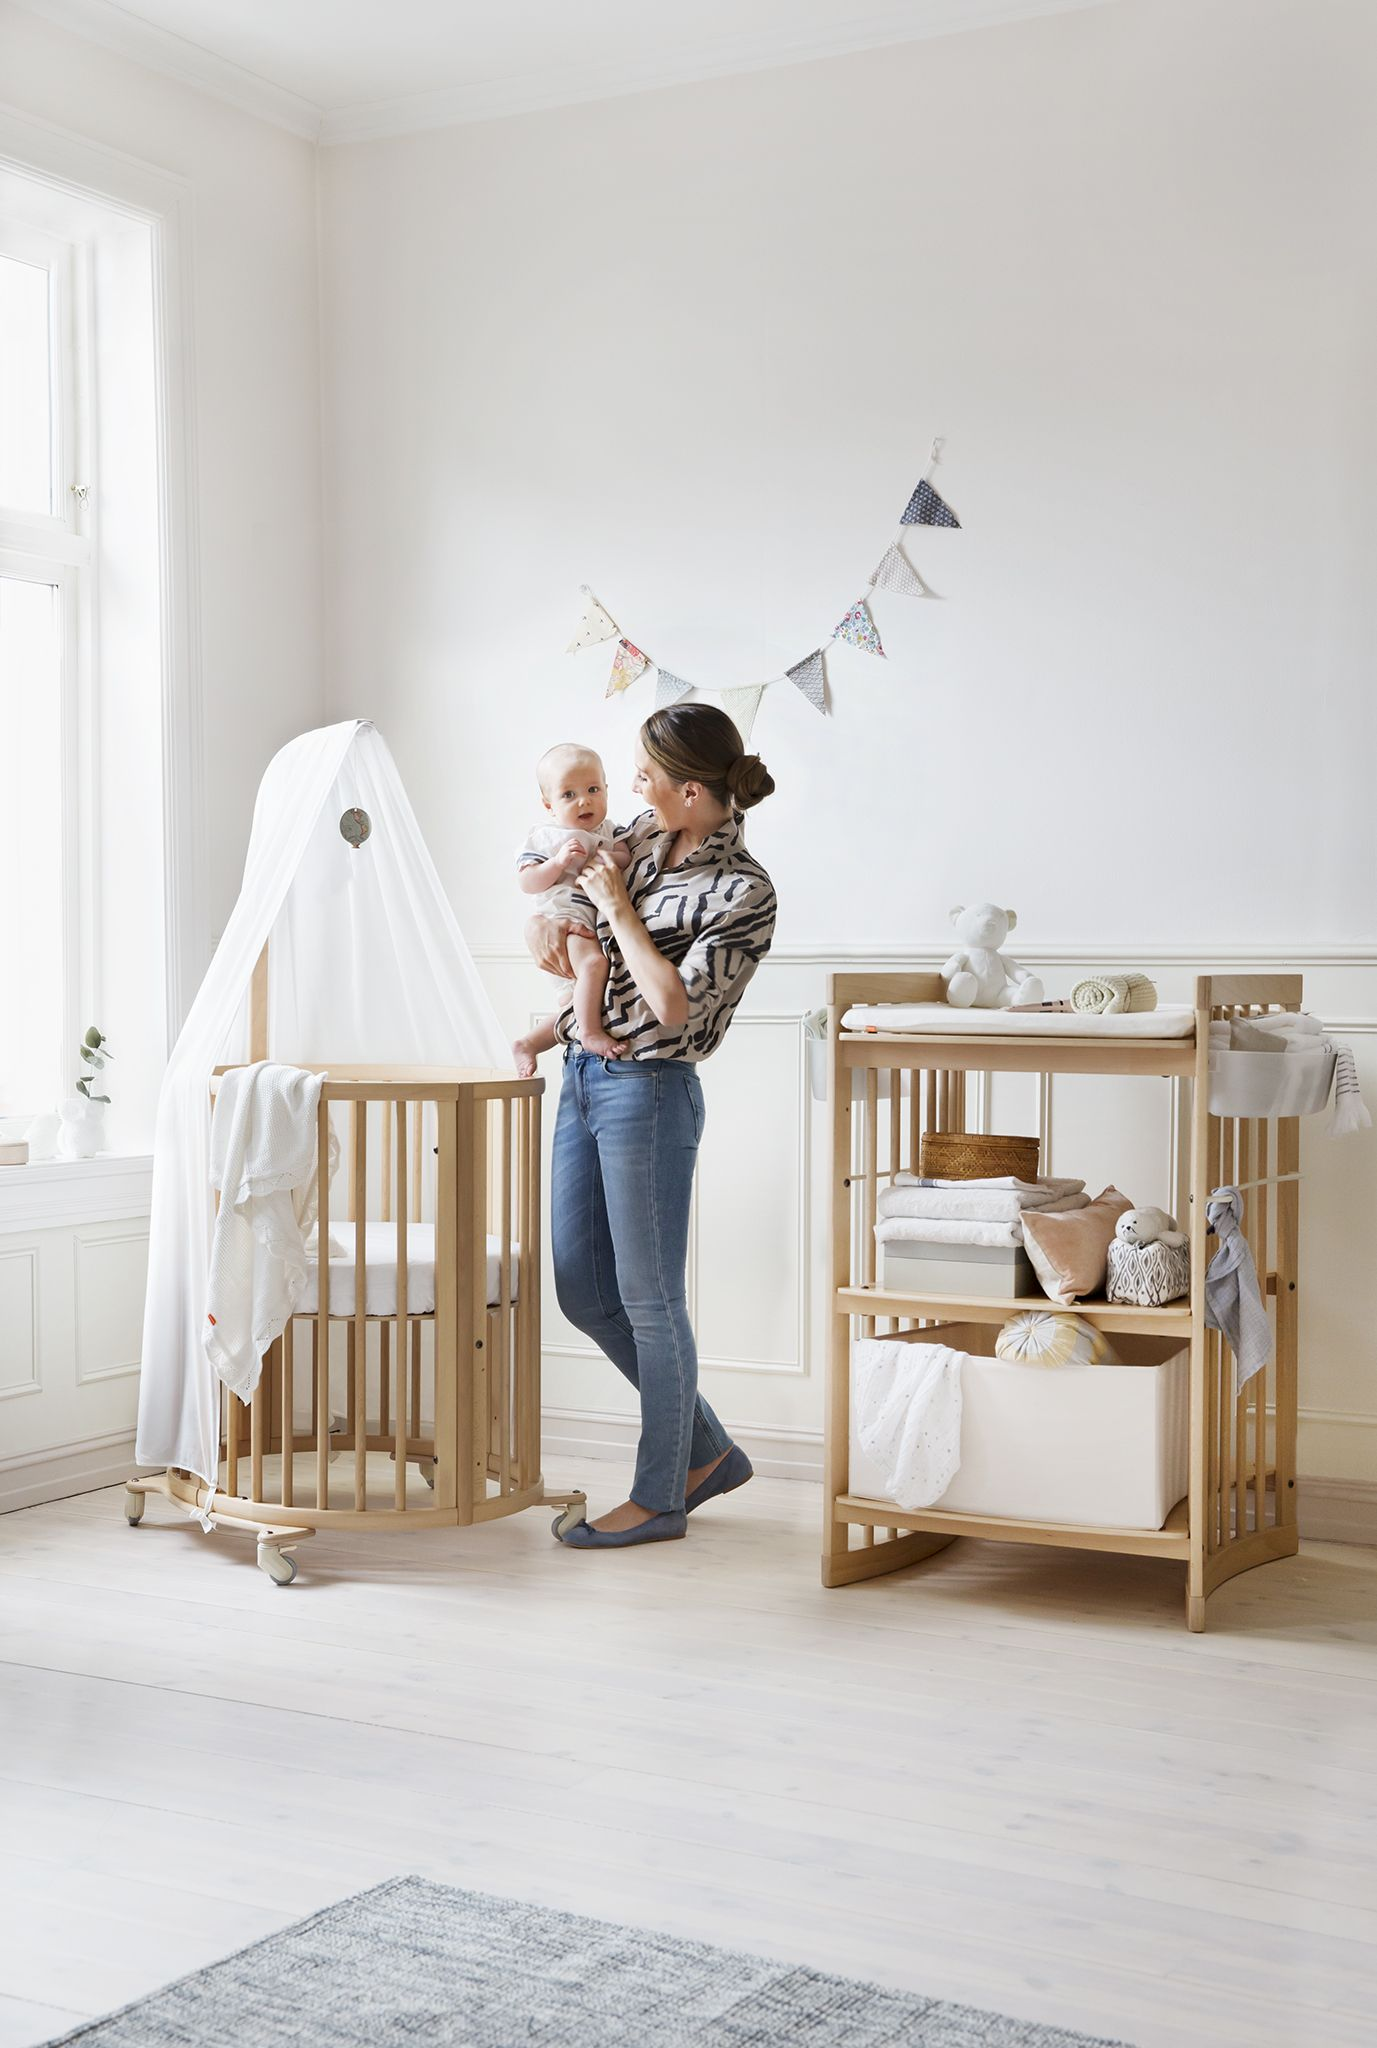 Meet Stokke | Baby gear, Babies and Nursery